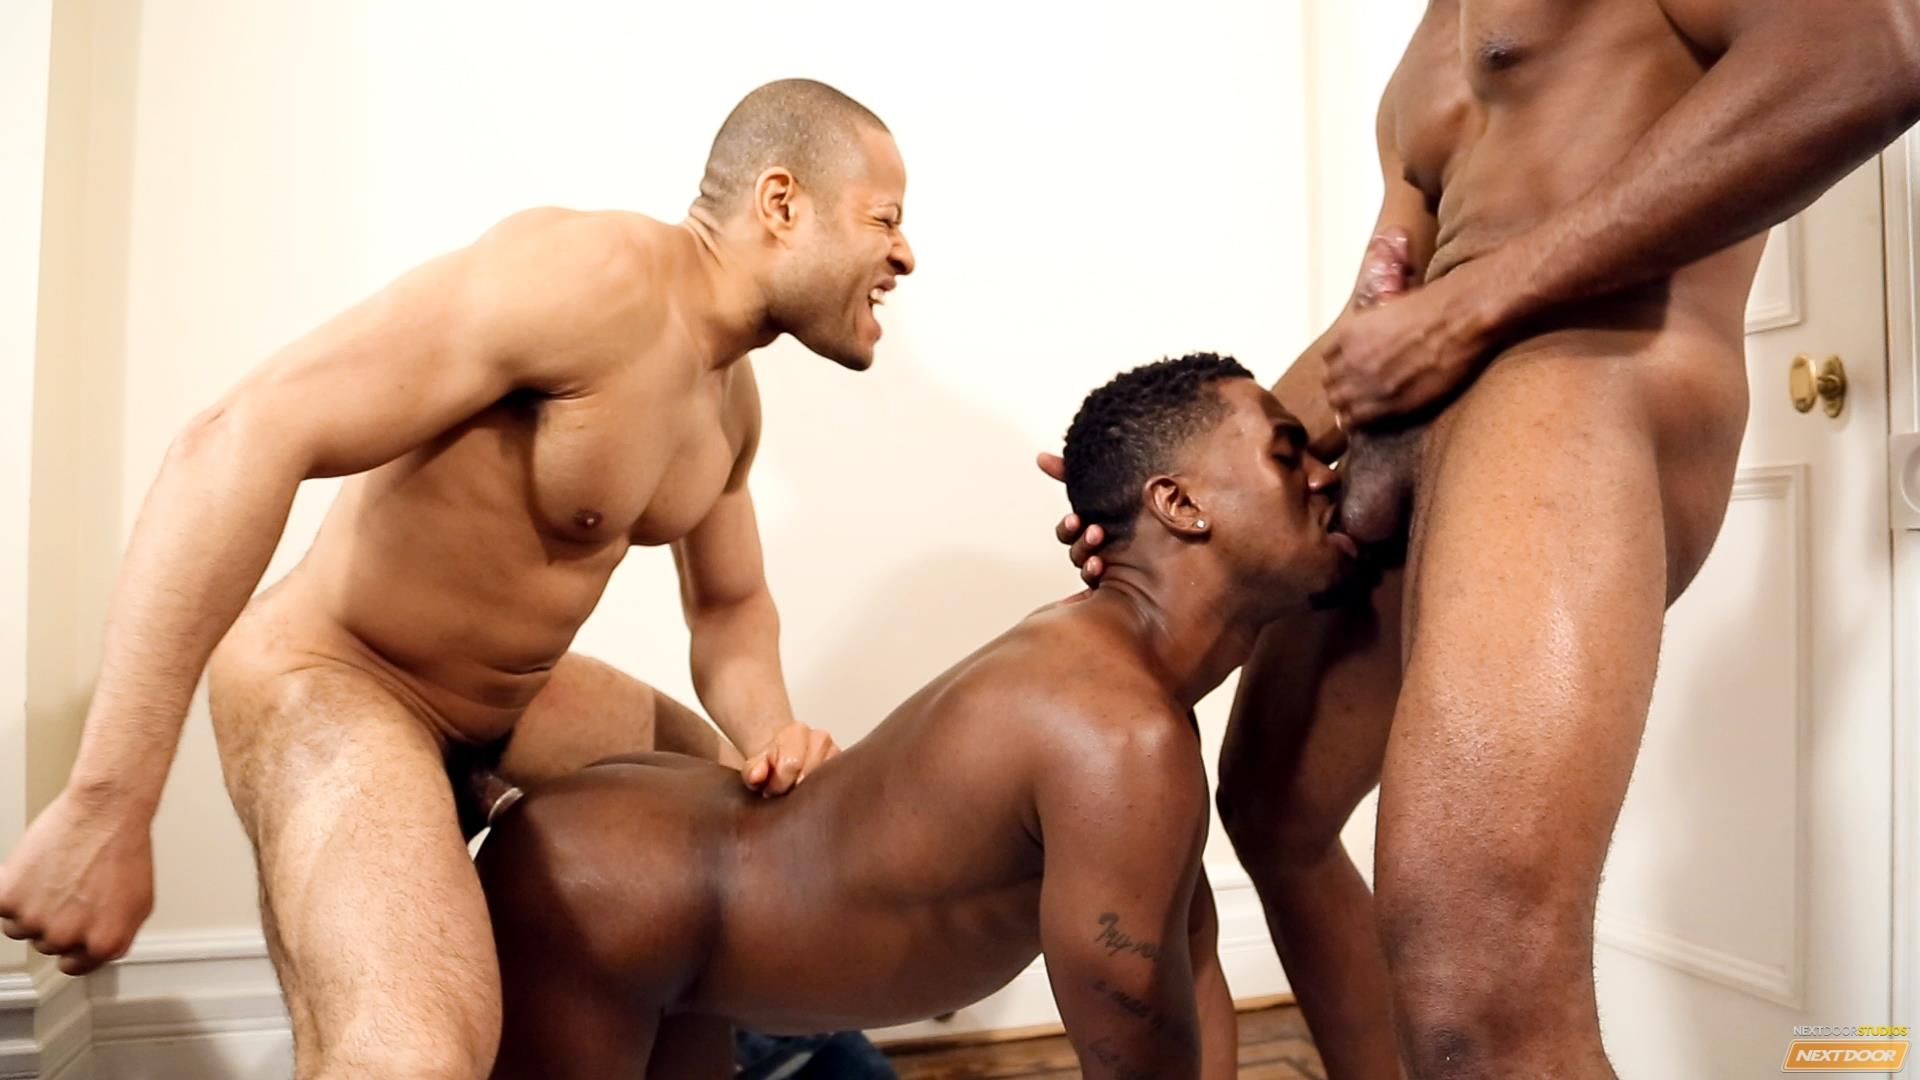 Next Door Ebony Krave Moore and Andre Donovan and Rex Cobra Big Black Cock Amateur Gay Porn 15 Three Black Guys Playing Strip Dominoes With Their Big Black Cocks